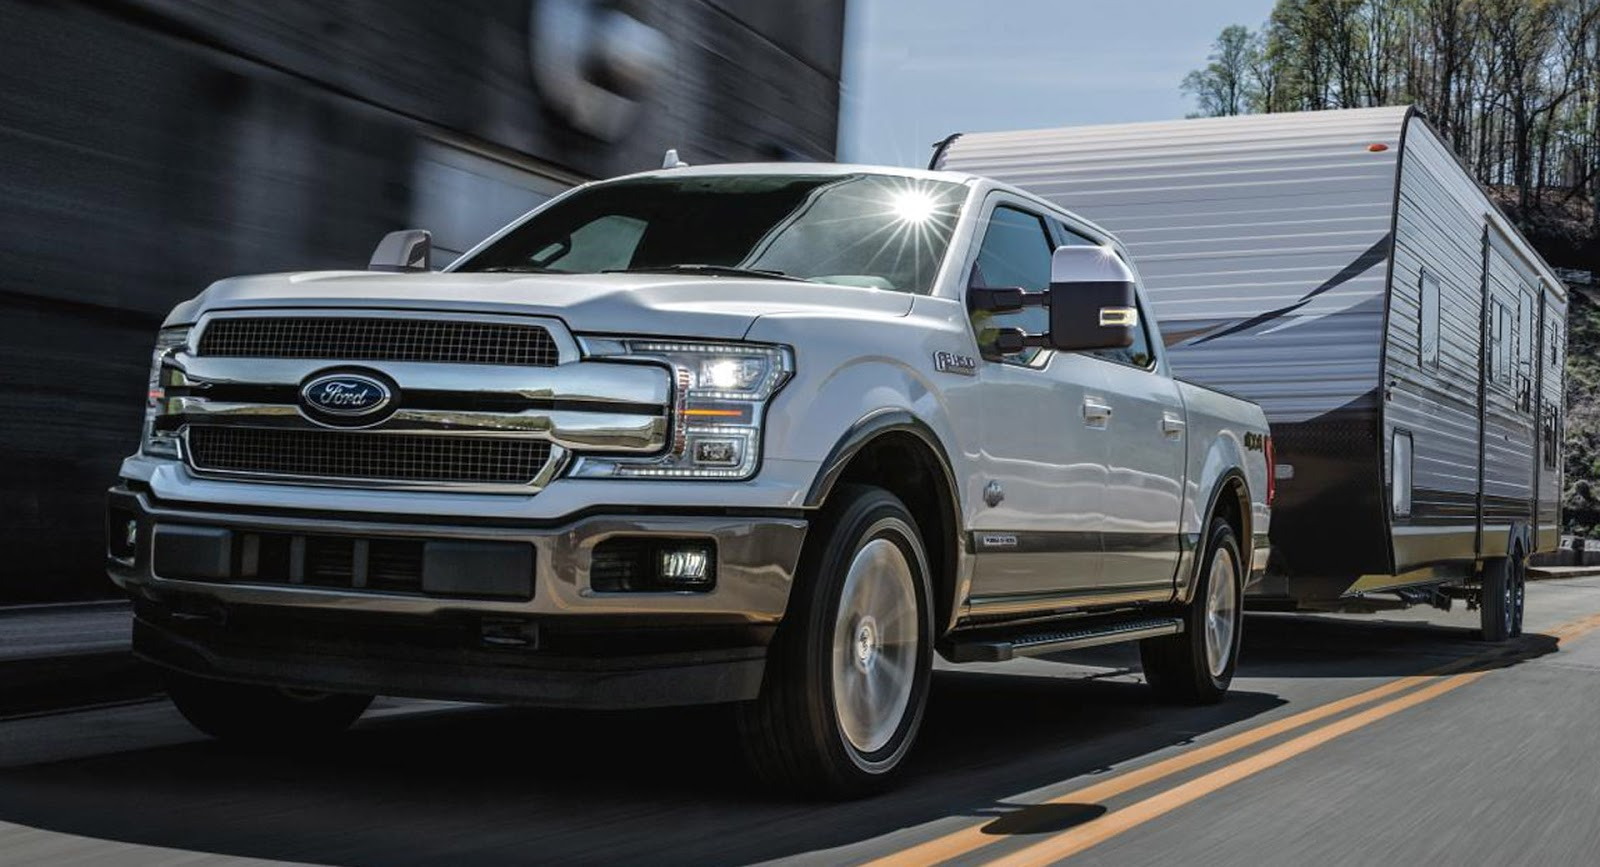 Ford to Launch Diesel Truck to Grab Fuel Economy Edge